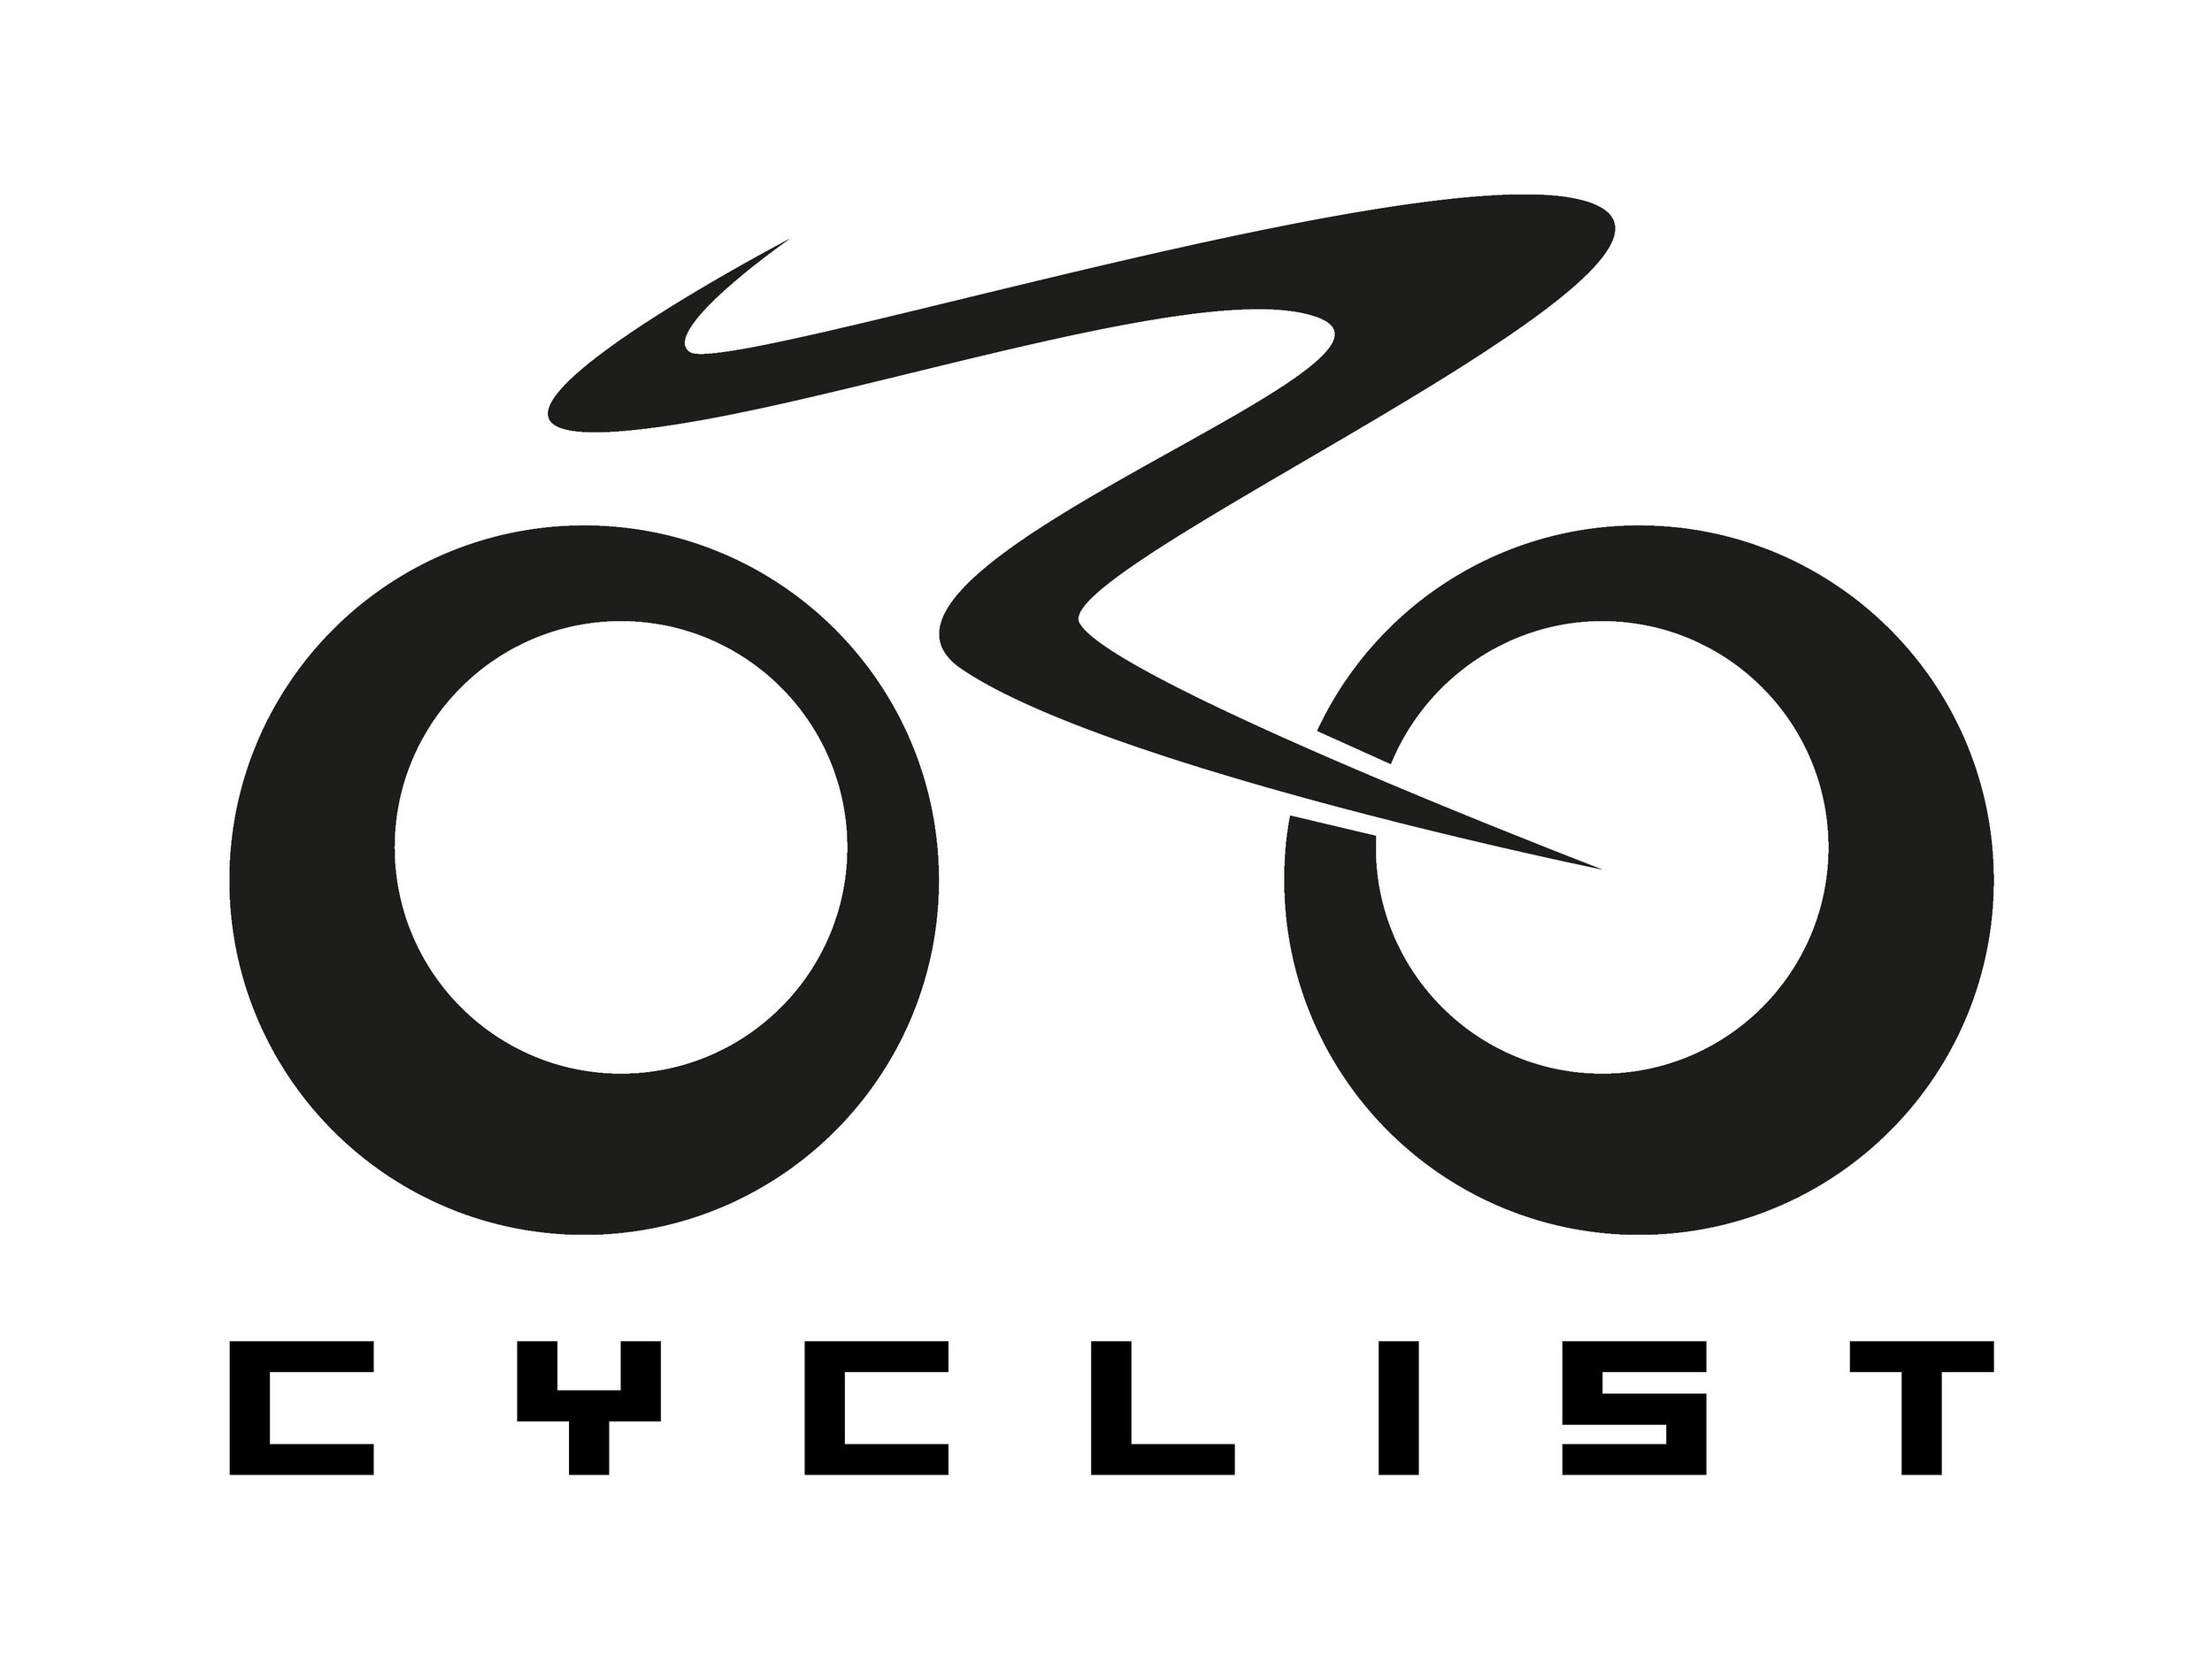 cyclist.white.background.jpg